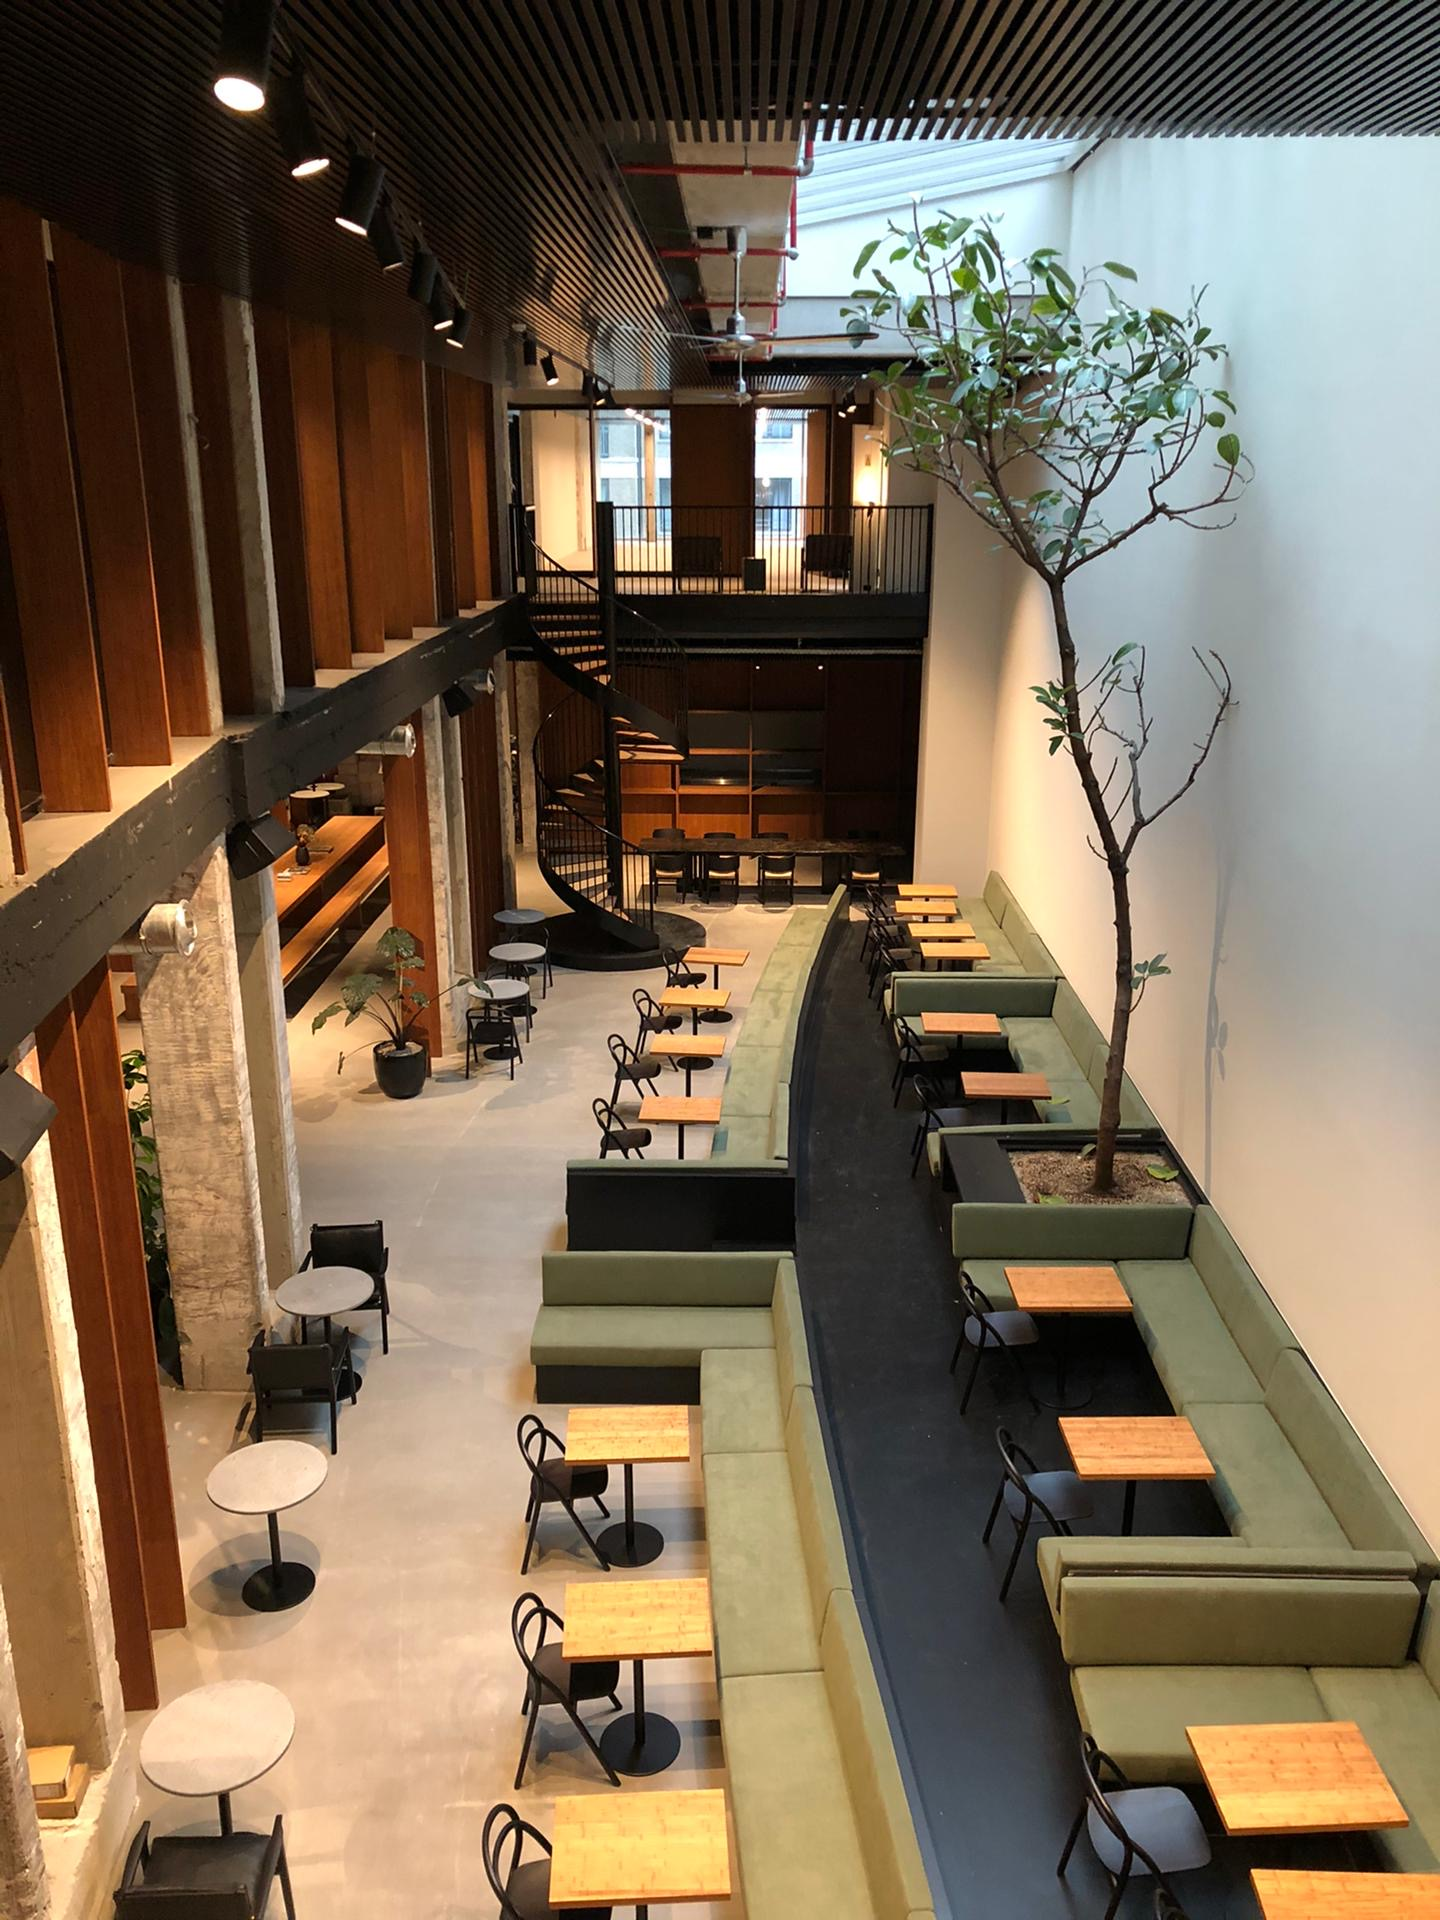 midori hub, a midori lunch location, in Fosbury and Sons Albert in Brussels